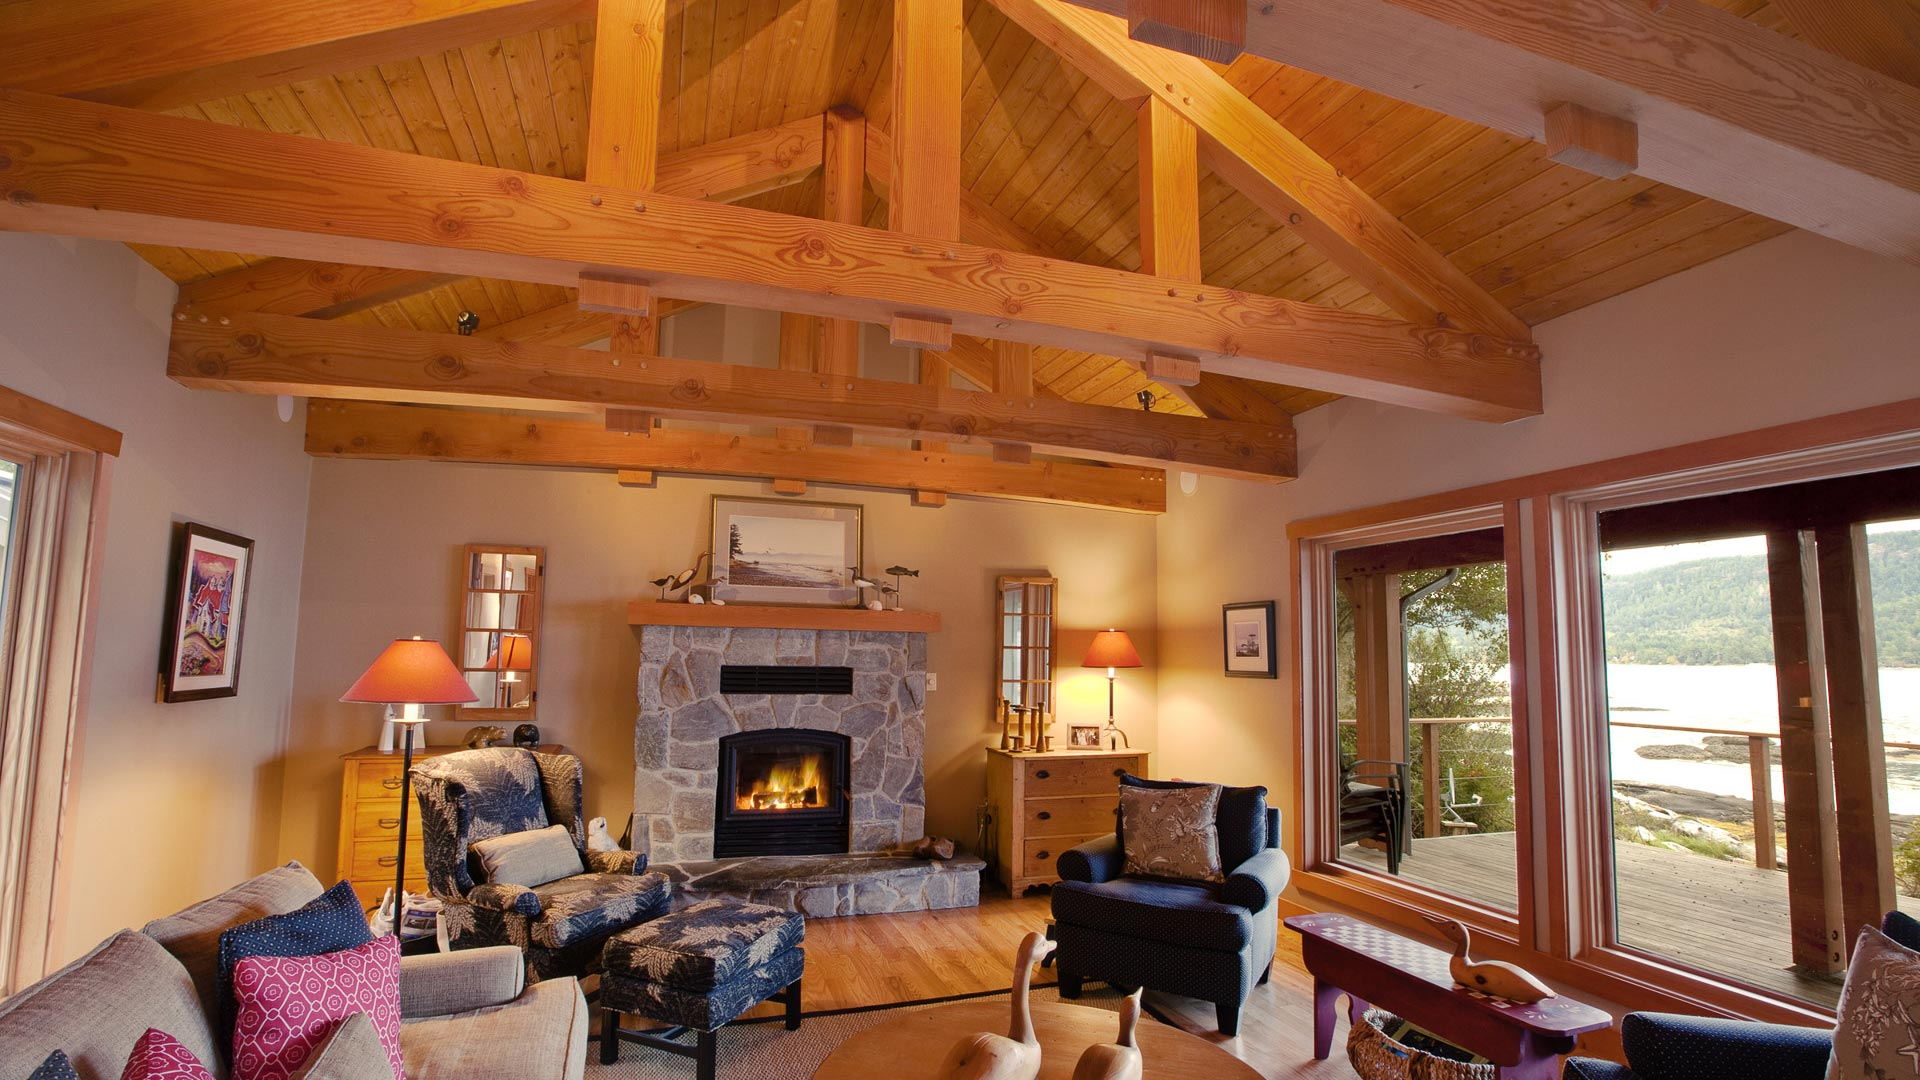 Addition Frame Home - Timber-Addition-feature_Wonderful Addition Frame Home - Timber-Addition-feature  Trends_395616.jpg